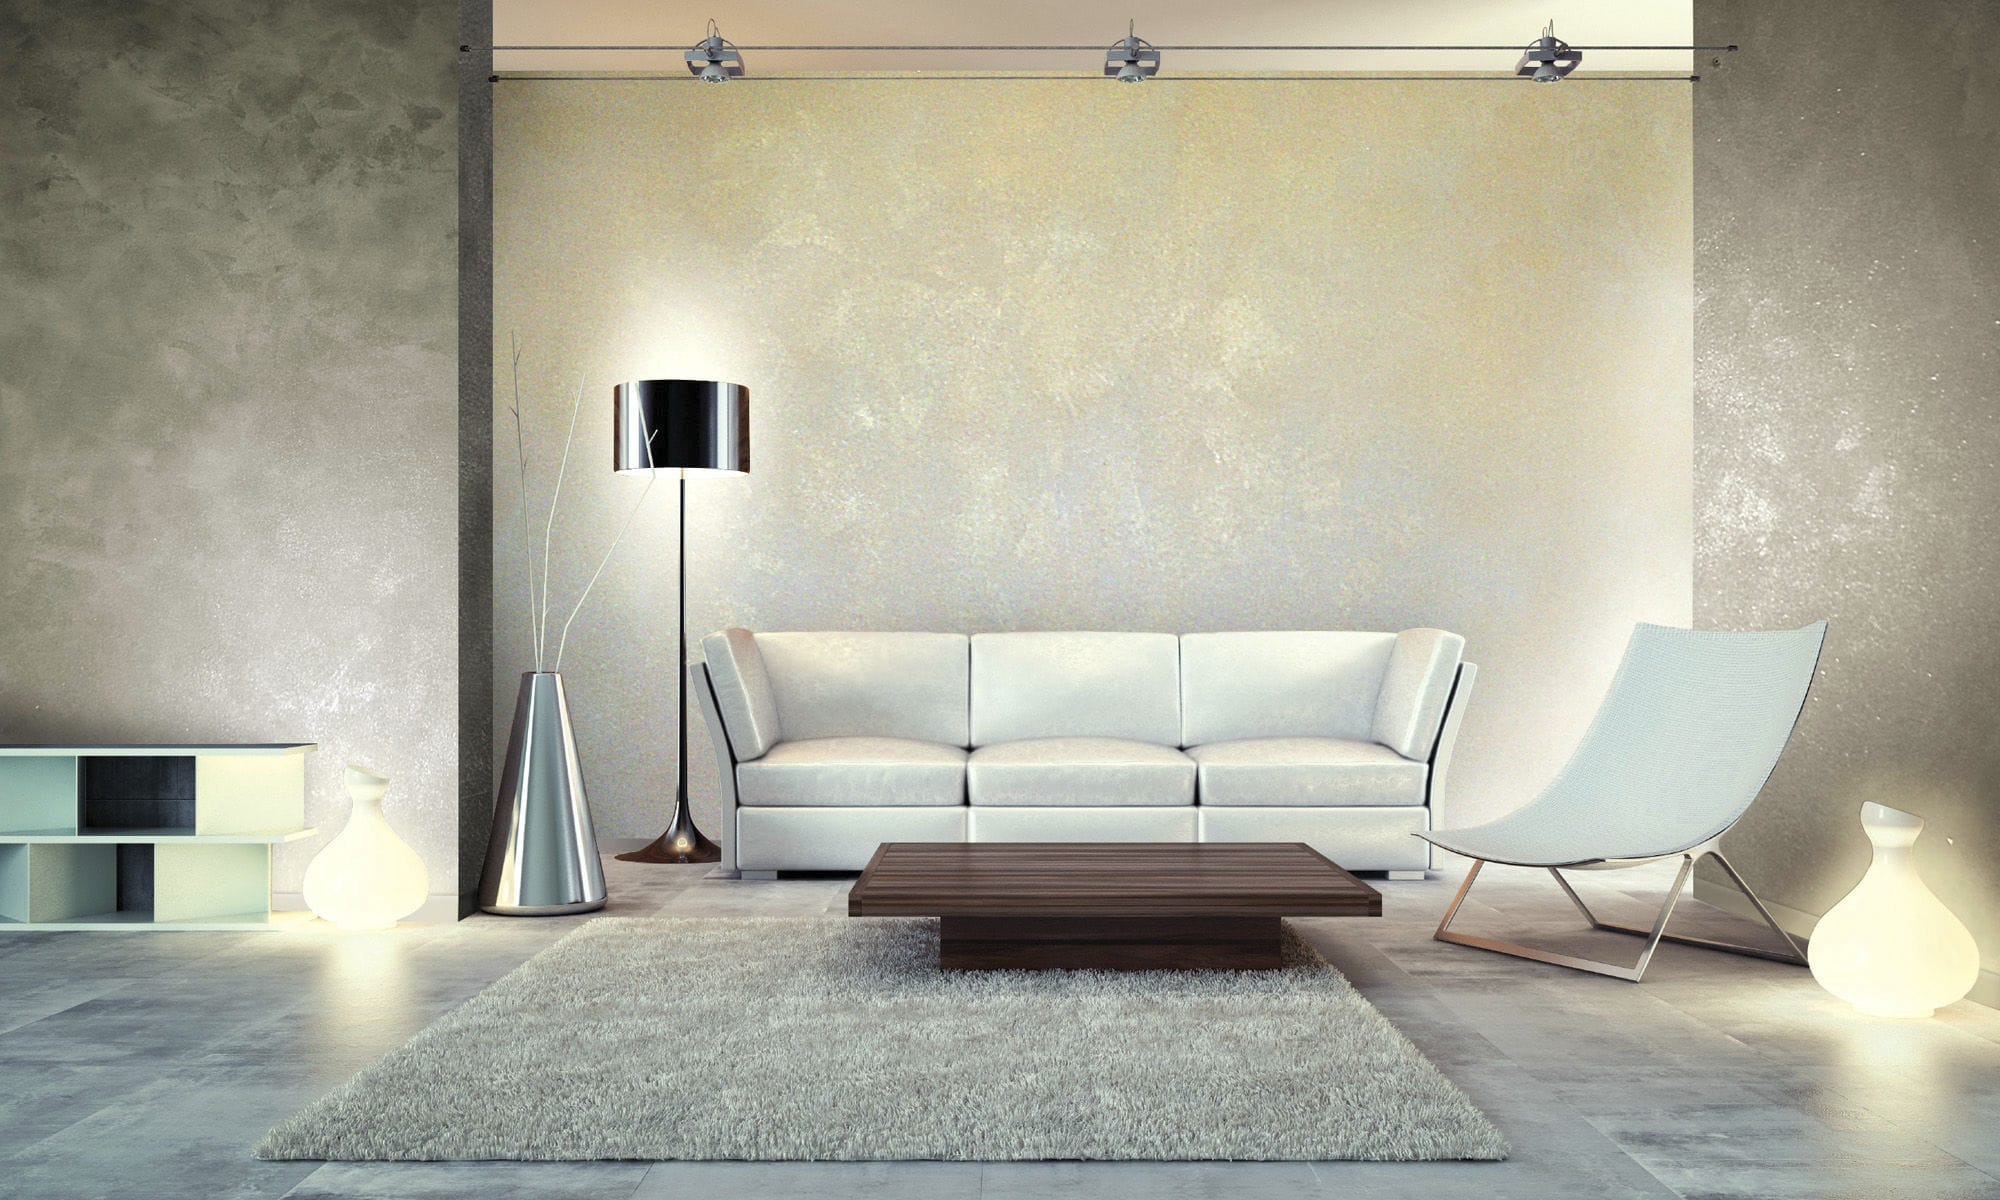 Pittura Acrilica Video Pittura Decorativa Per Muro Interno Acrilica Klondike Light Valpaint